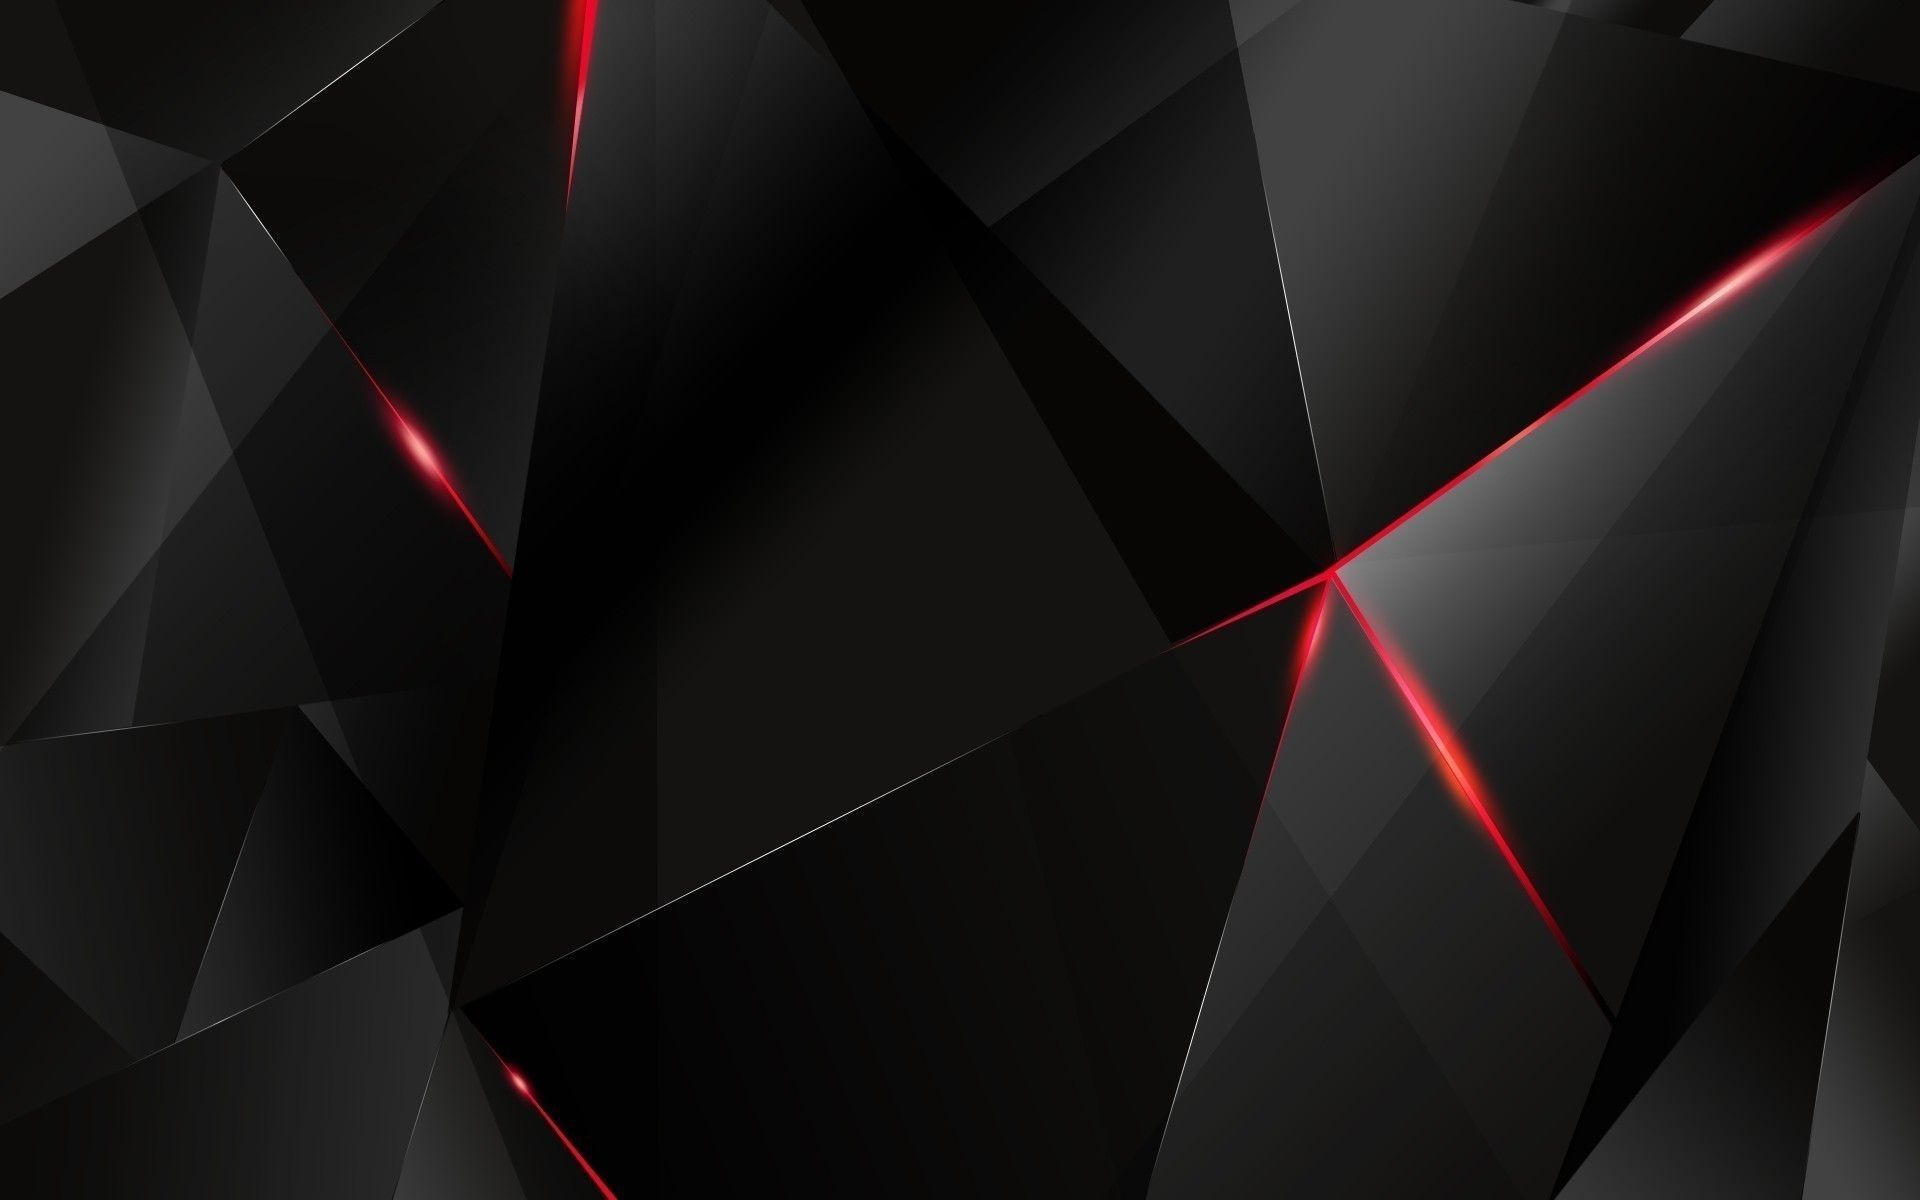 Download Gambar Black And Red Wallpaper Hd Pc Terbaru 2020 Red And Black Wallpaper Black And Red Wallpapers Red And Black Background